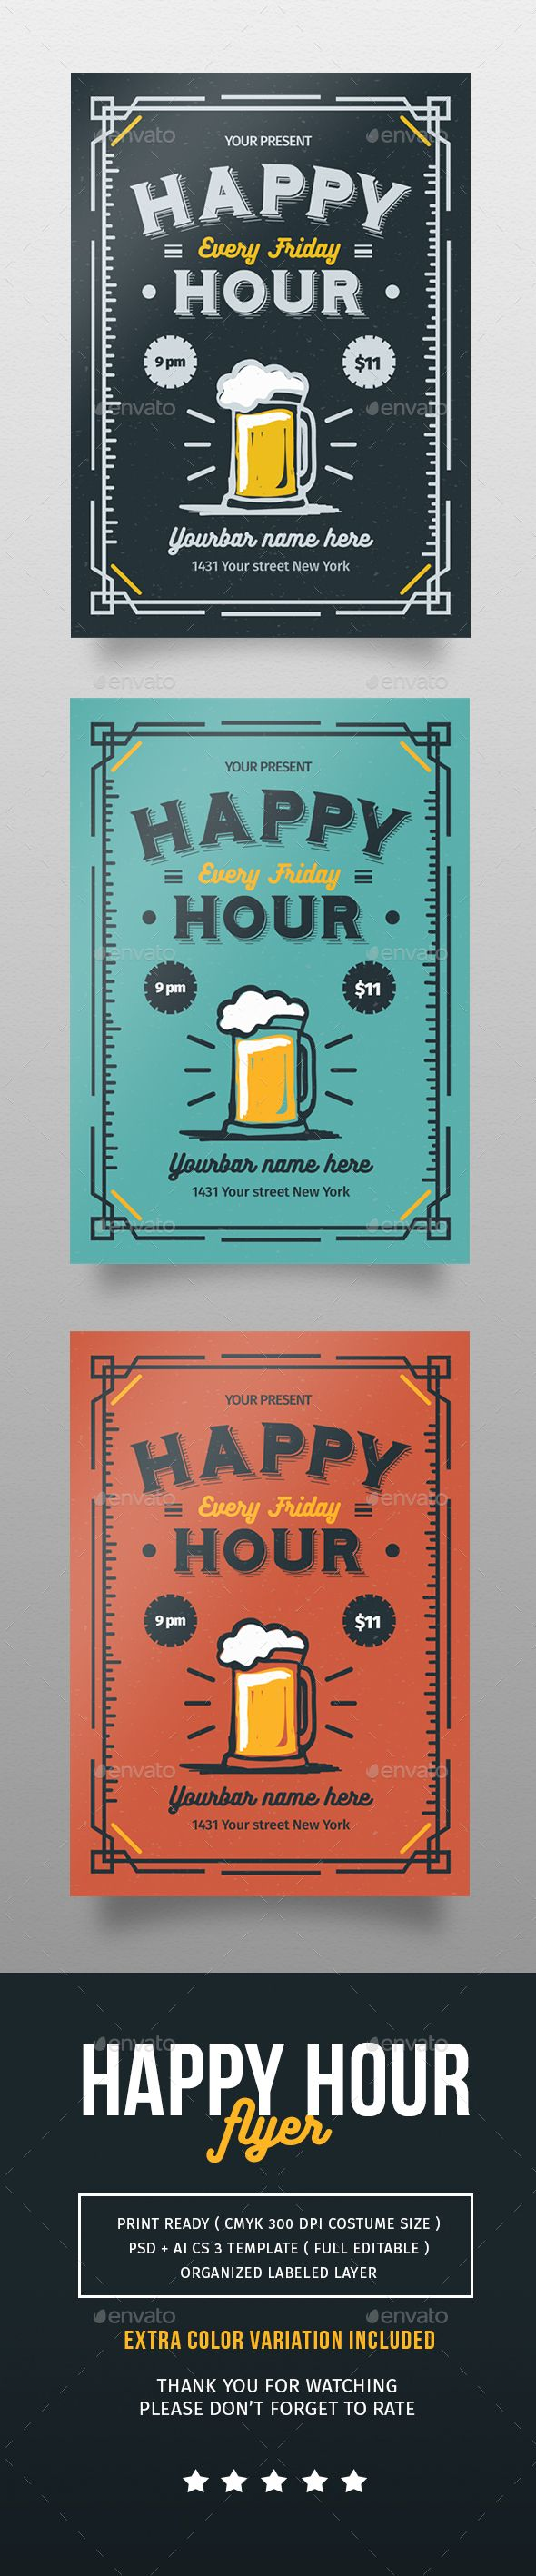 Happy Hour Flyer #PSD #bar #beer #$6 #retro